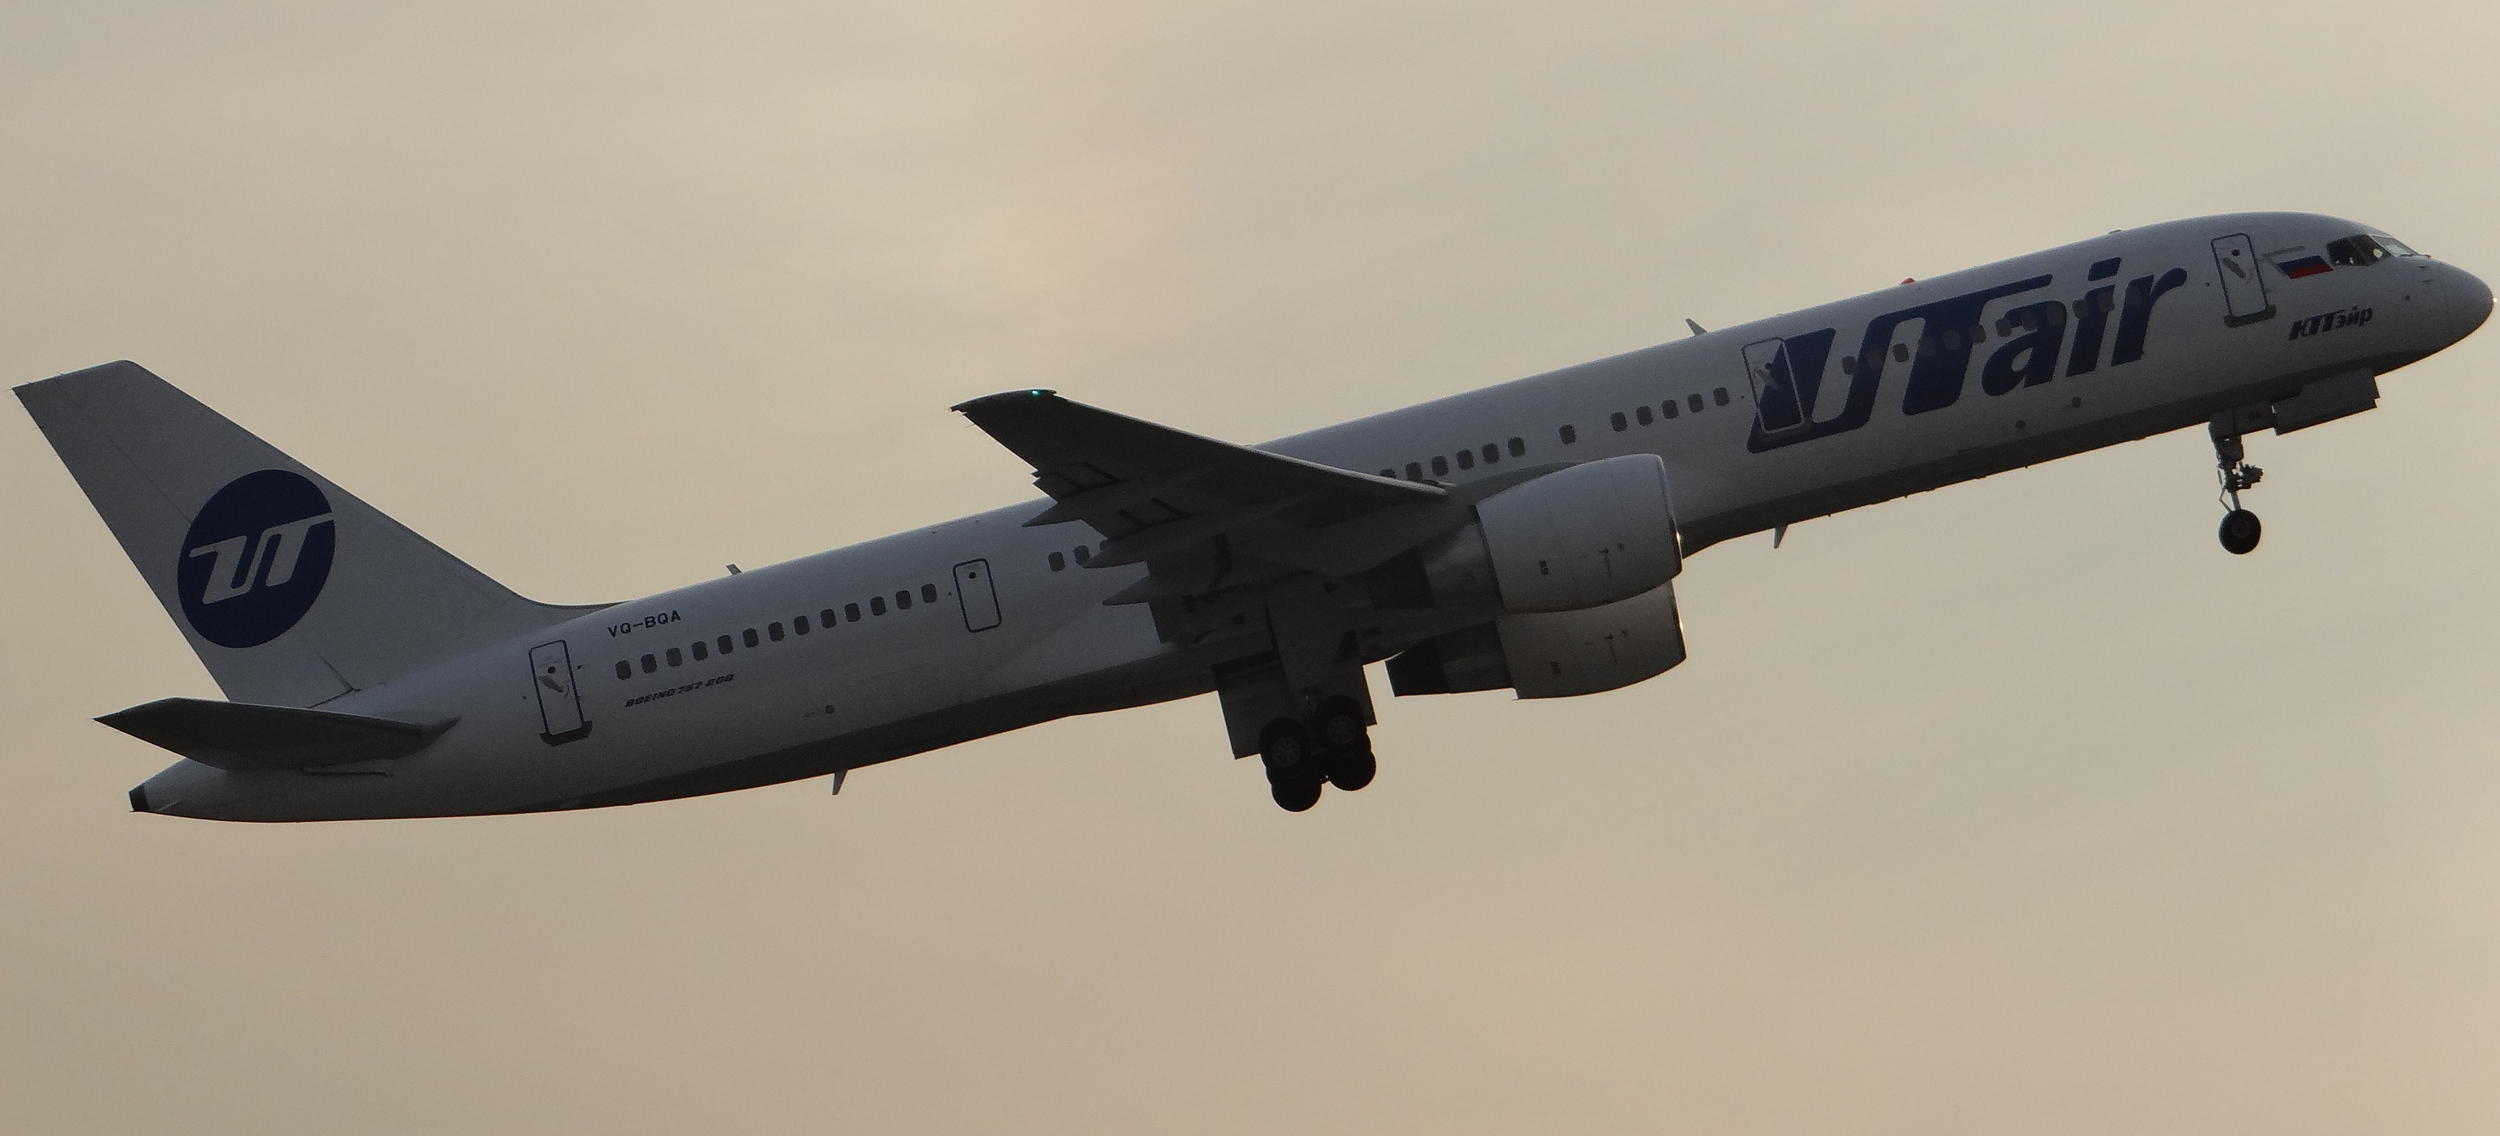 UTair Boeing 757 taking-off from Domodedovo airport Moscow at sunset. It soon won't be happening anymore, as UTair withdraws this aircraft type.